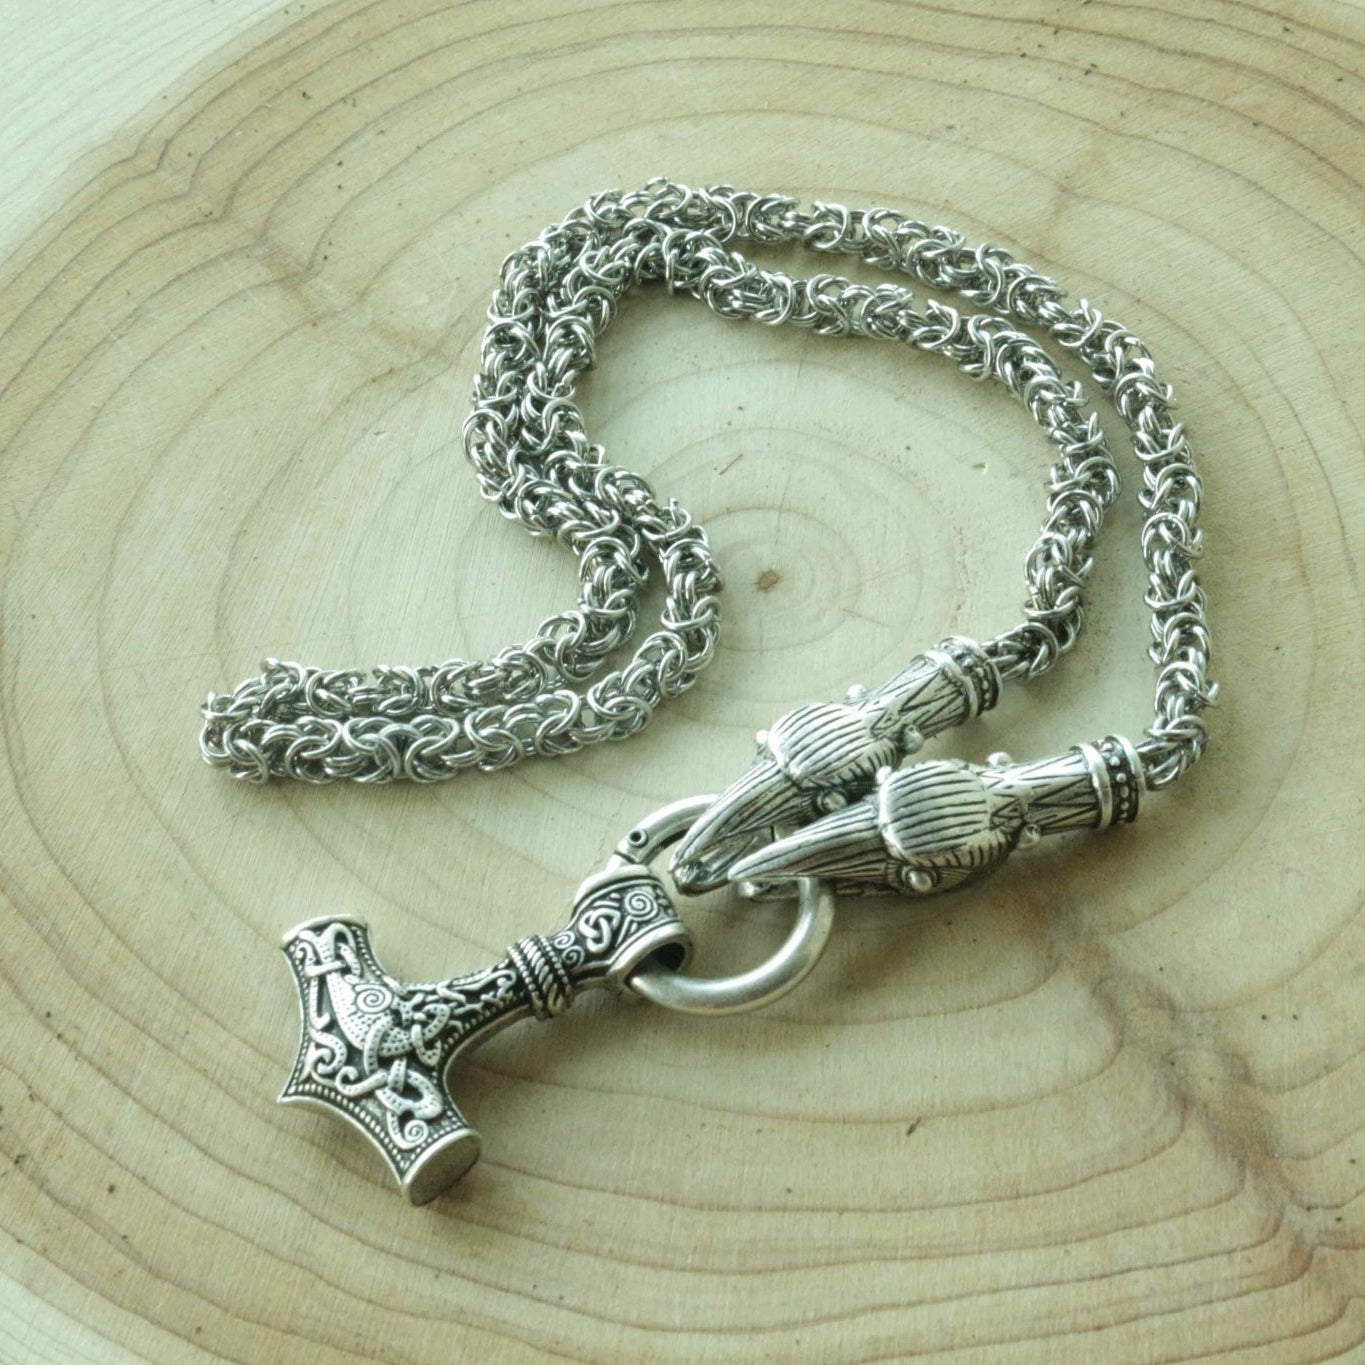 HANDMADE Legendary King's Chain Necklace with Thor's Hammer! - VikingsBrand